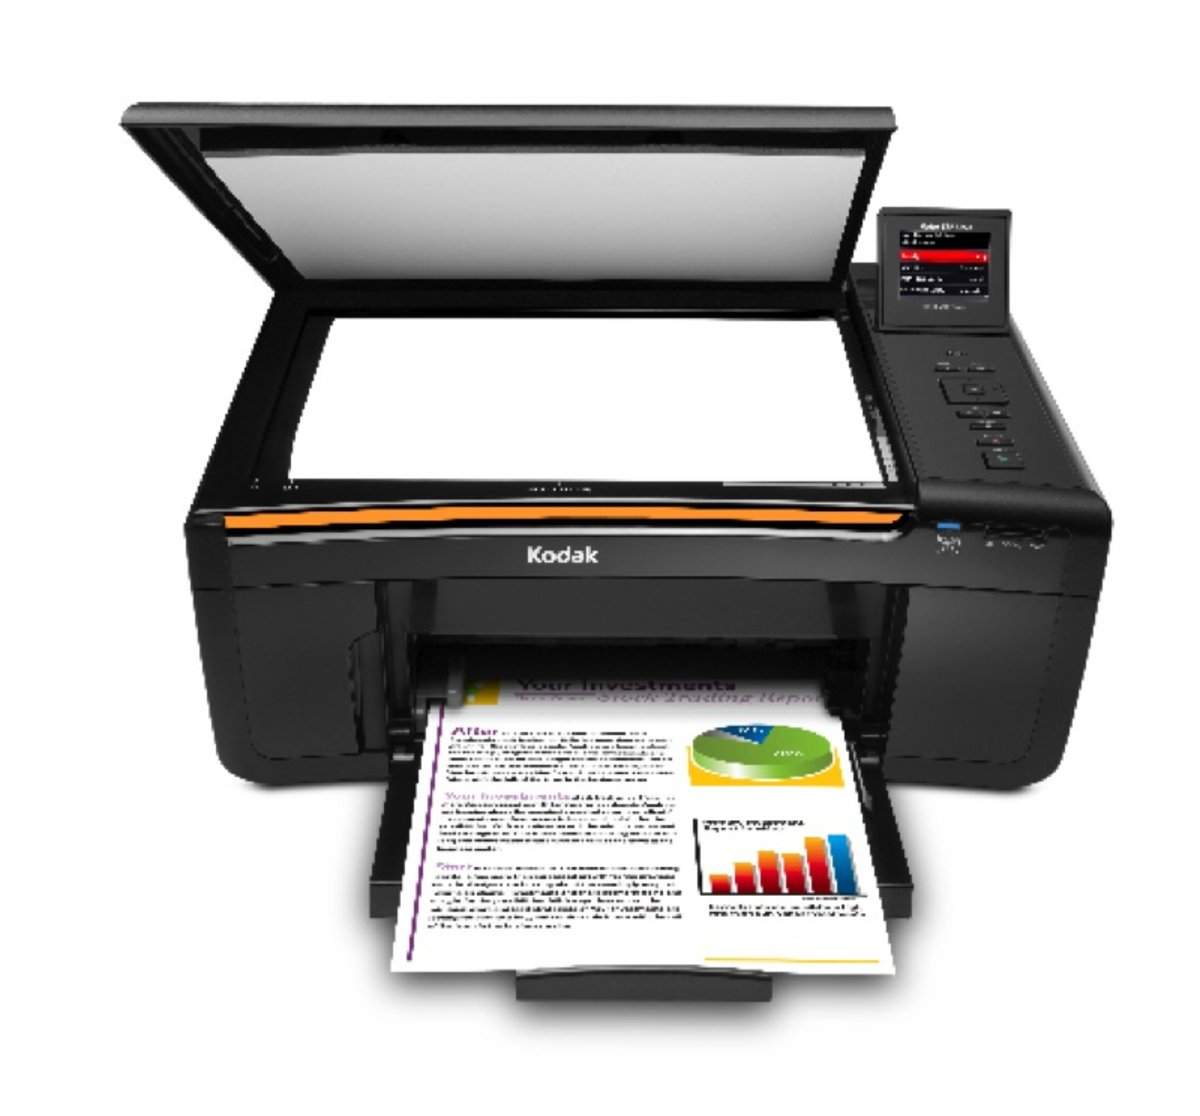 DRIVERS: KODAK 5250 PRINTER